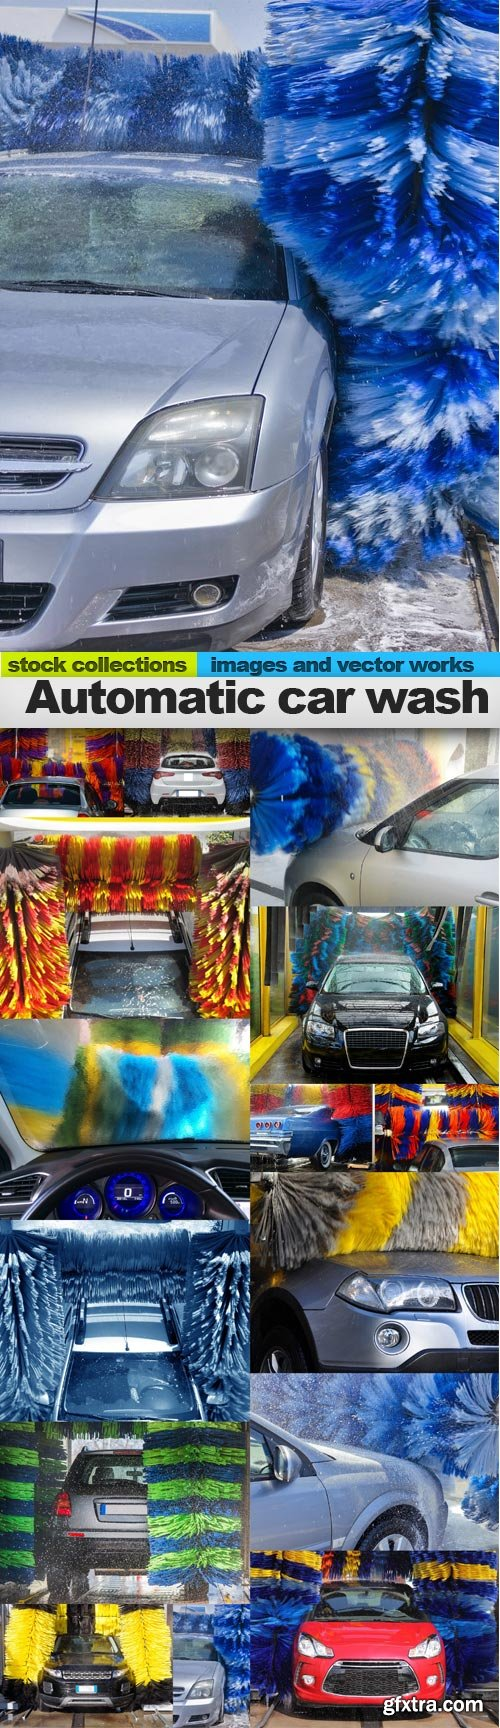 Automatic car wash, 15 x UHQ JPEG